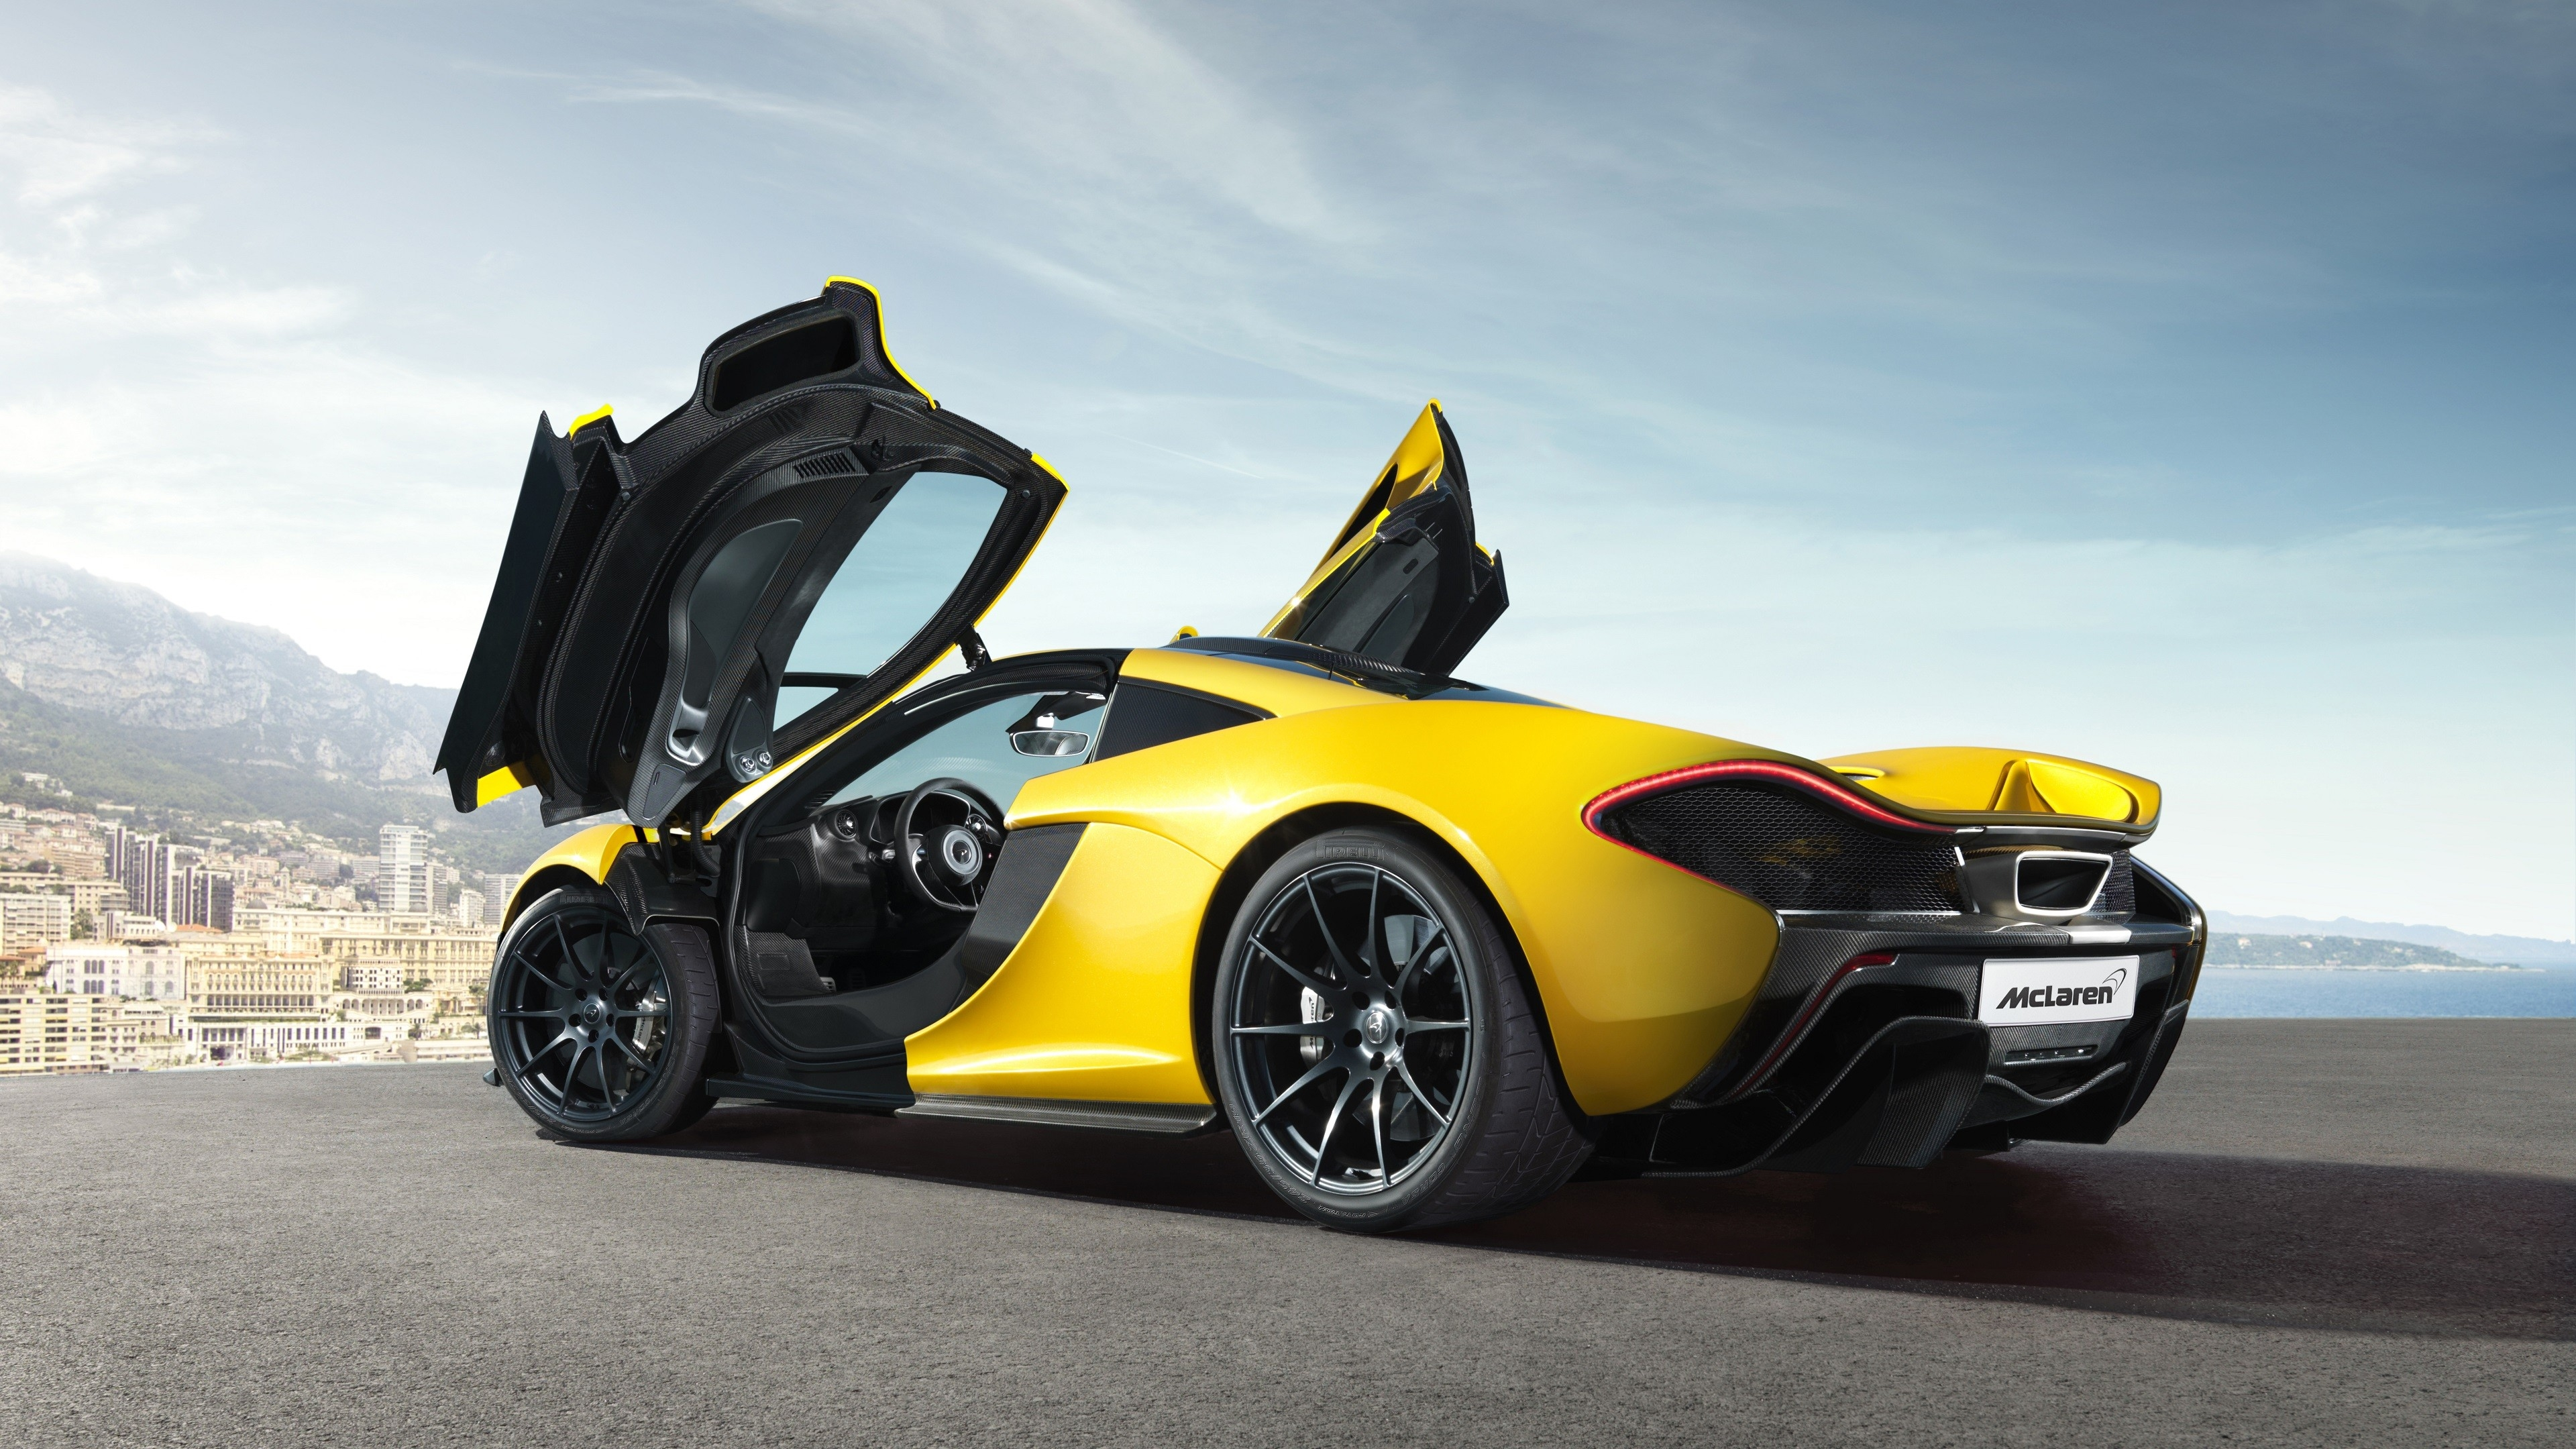 Download 4k Ultra Hd Cars Wallpapers For Windows 87xp Download